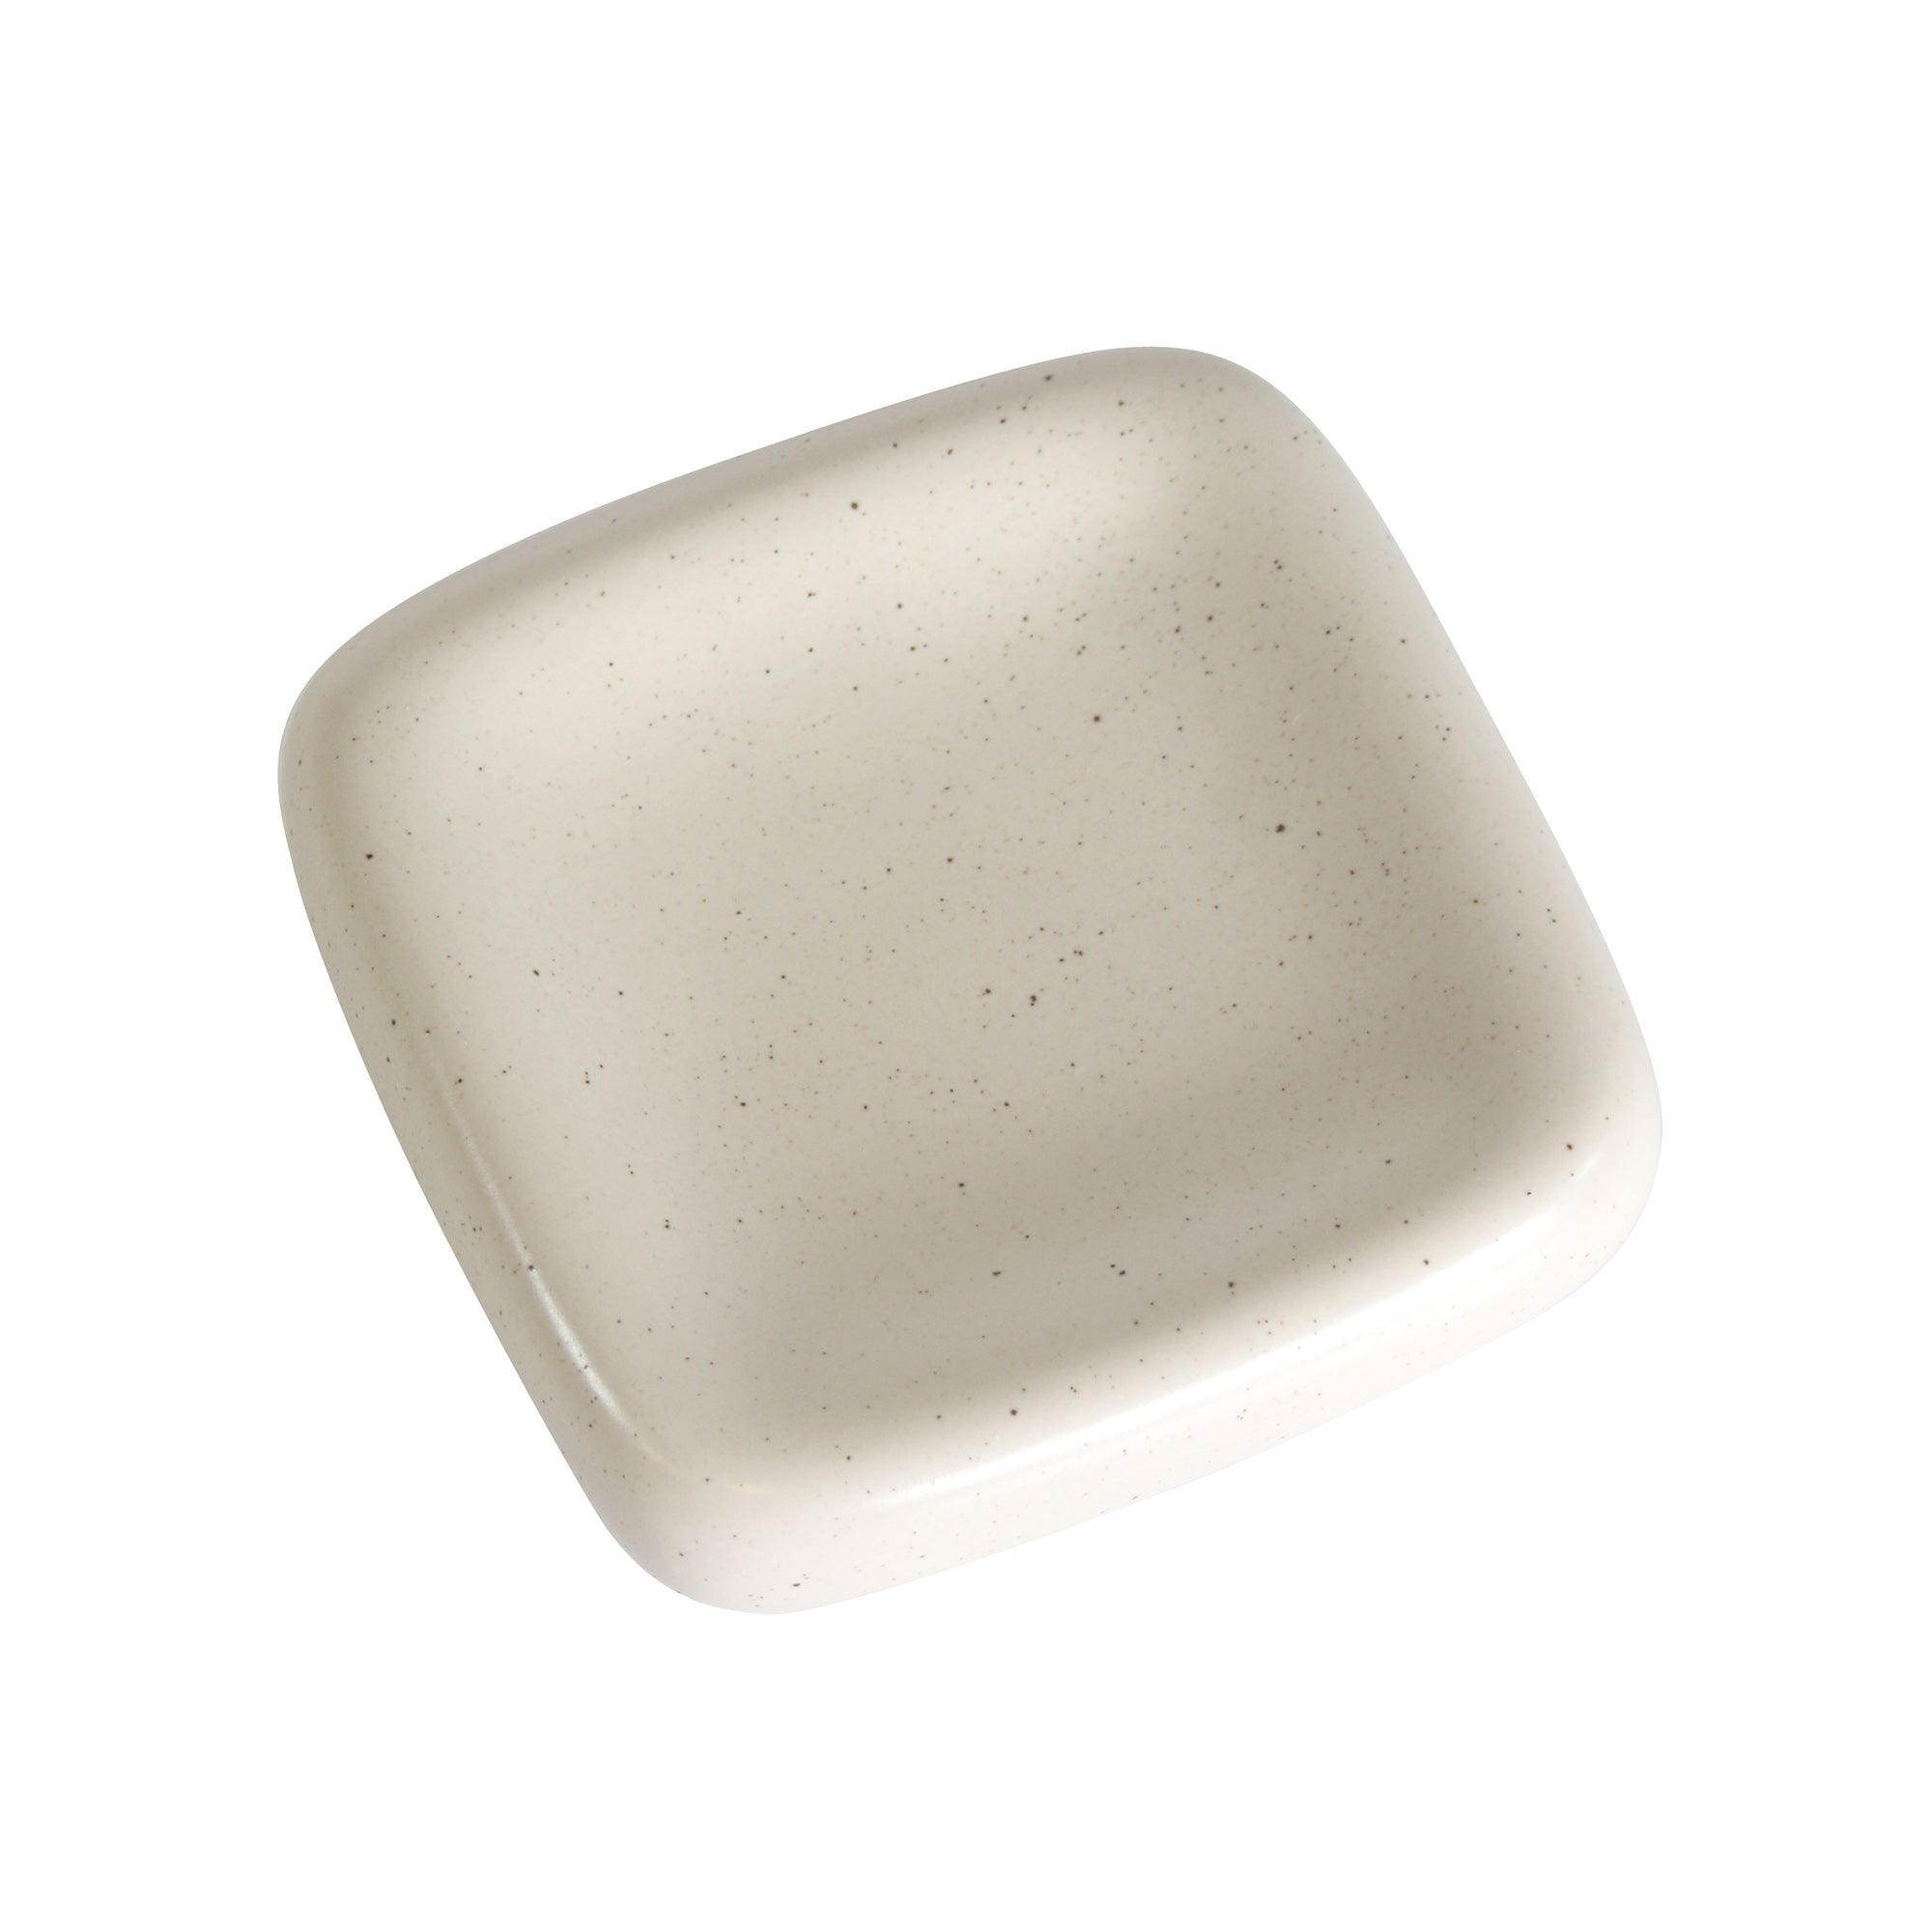 Pebble Collection Soap Dish